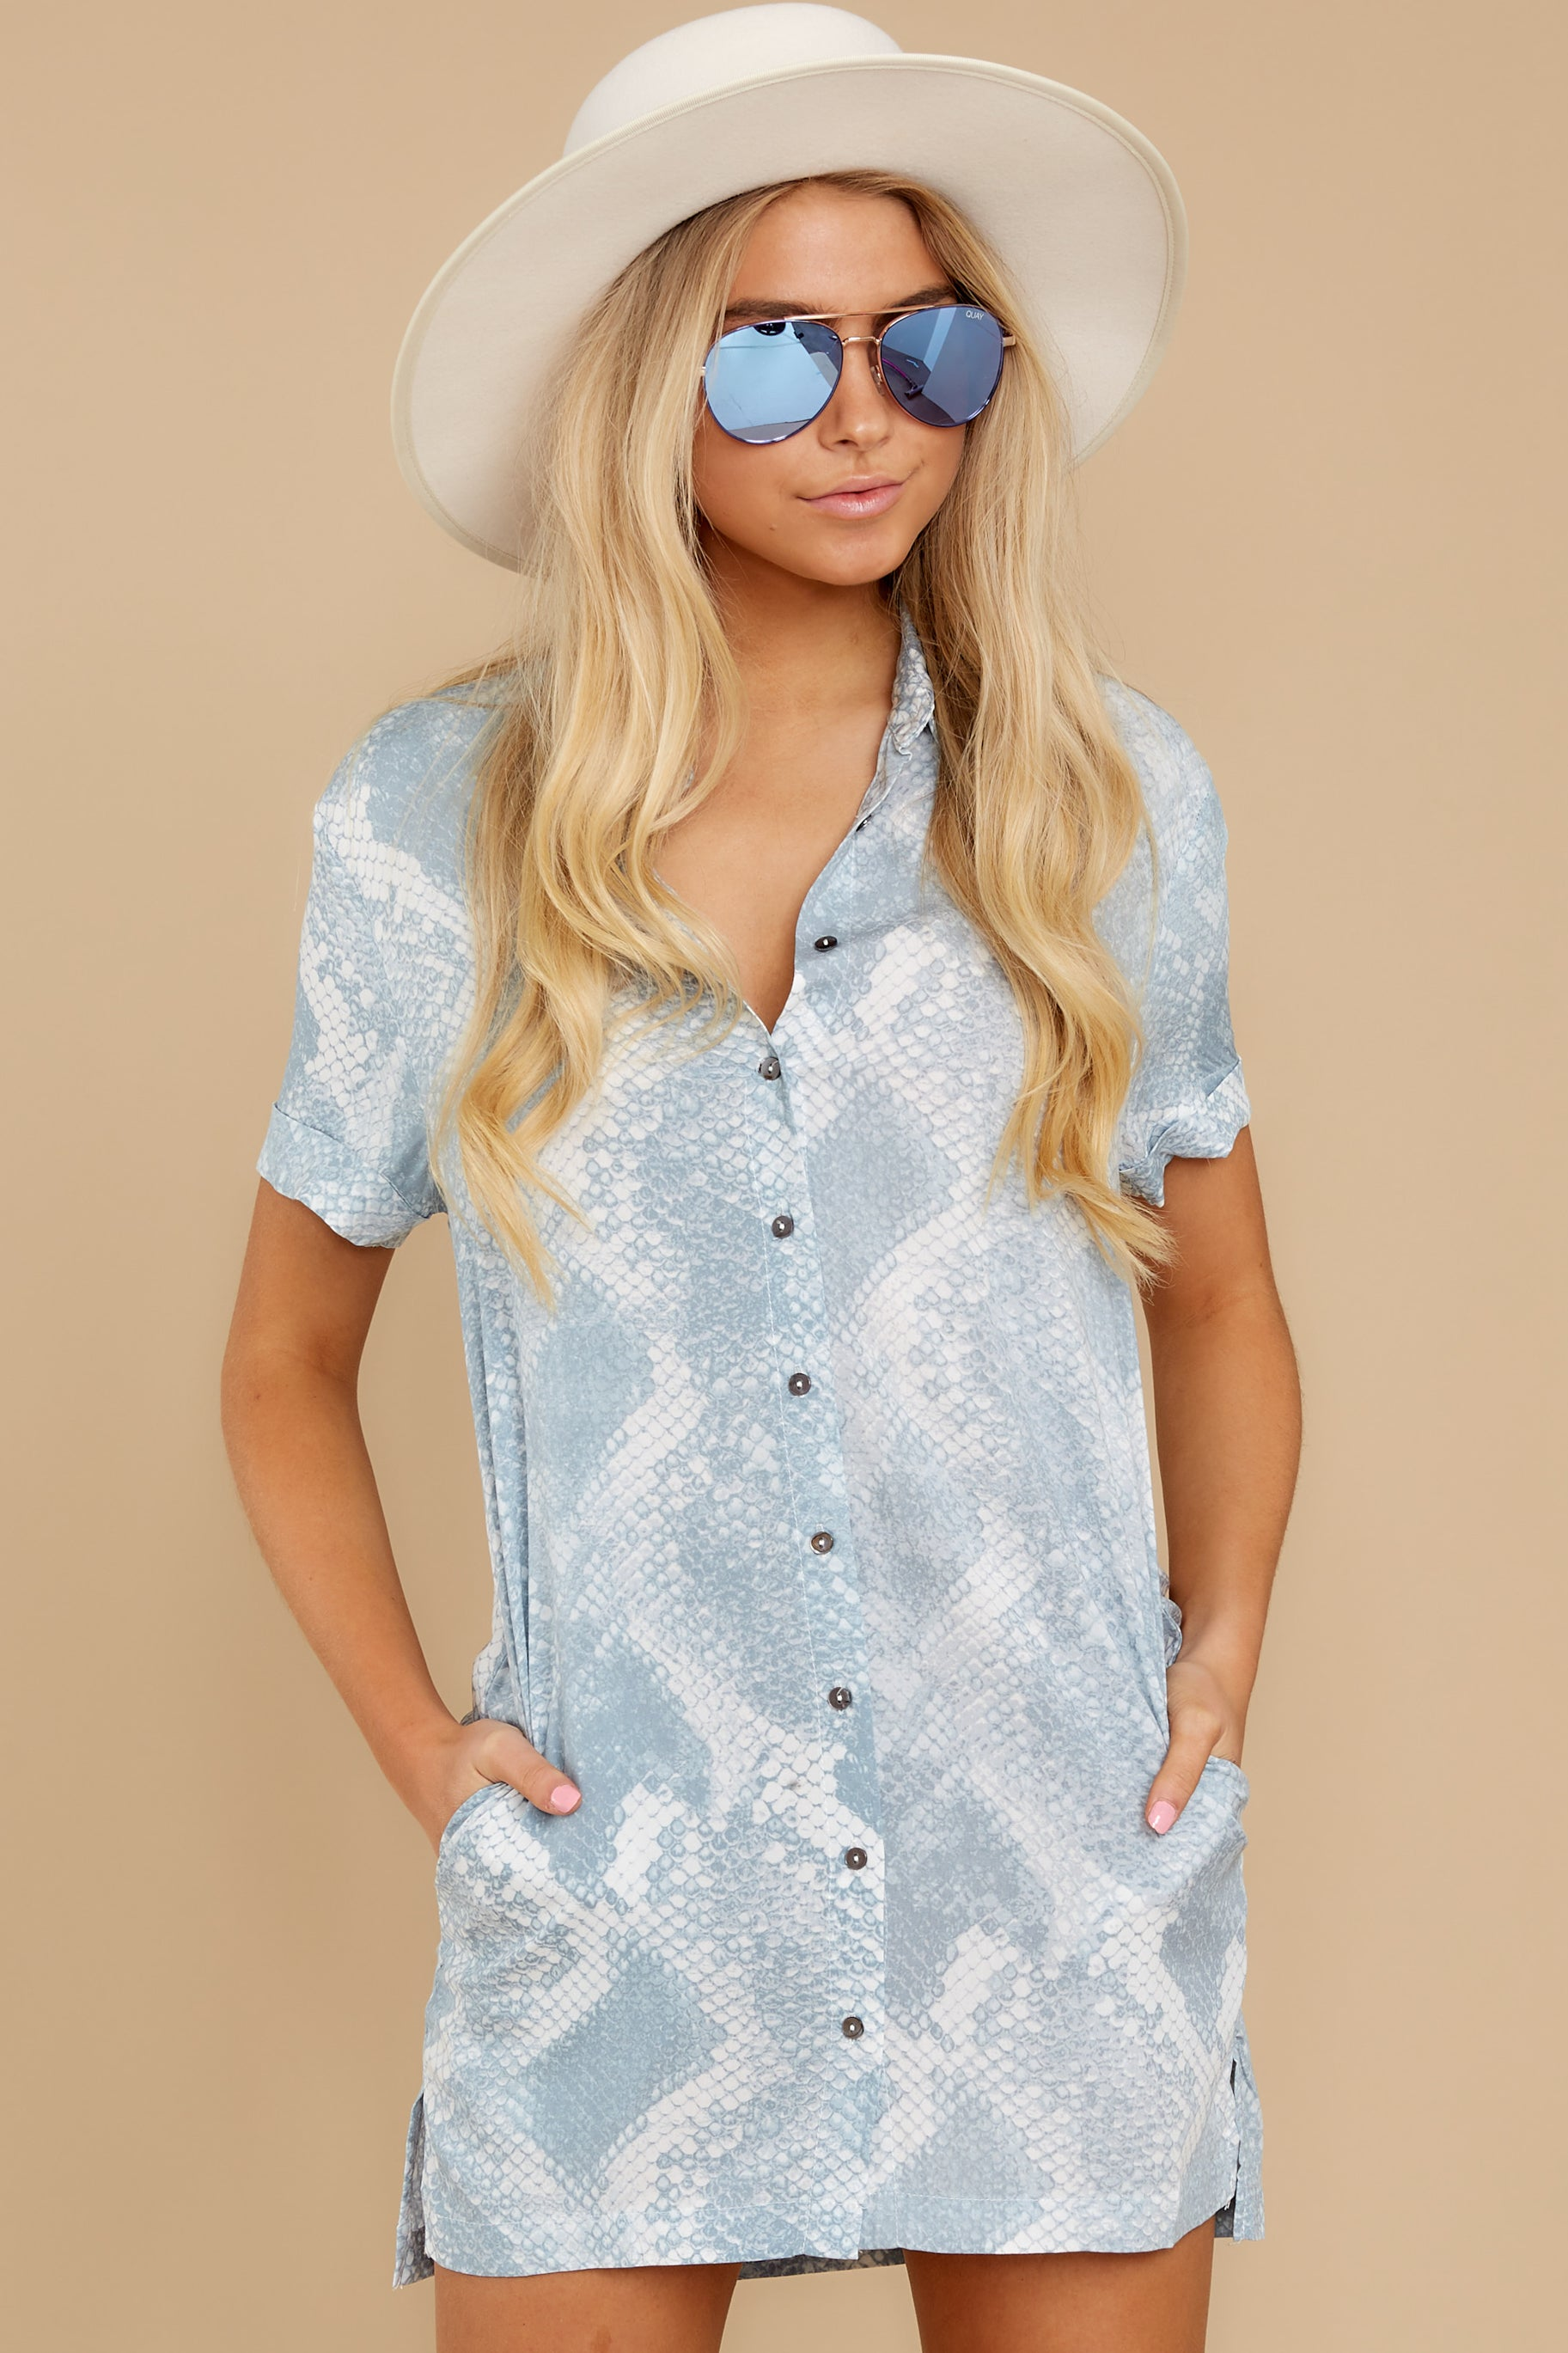 7 Meeting Family Light Blue Snake Print Button Up Tunic at reddress.com